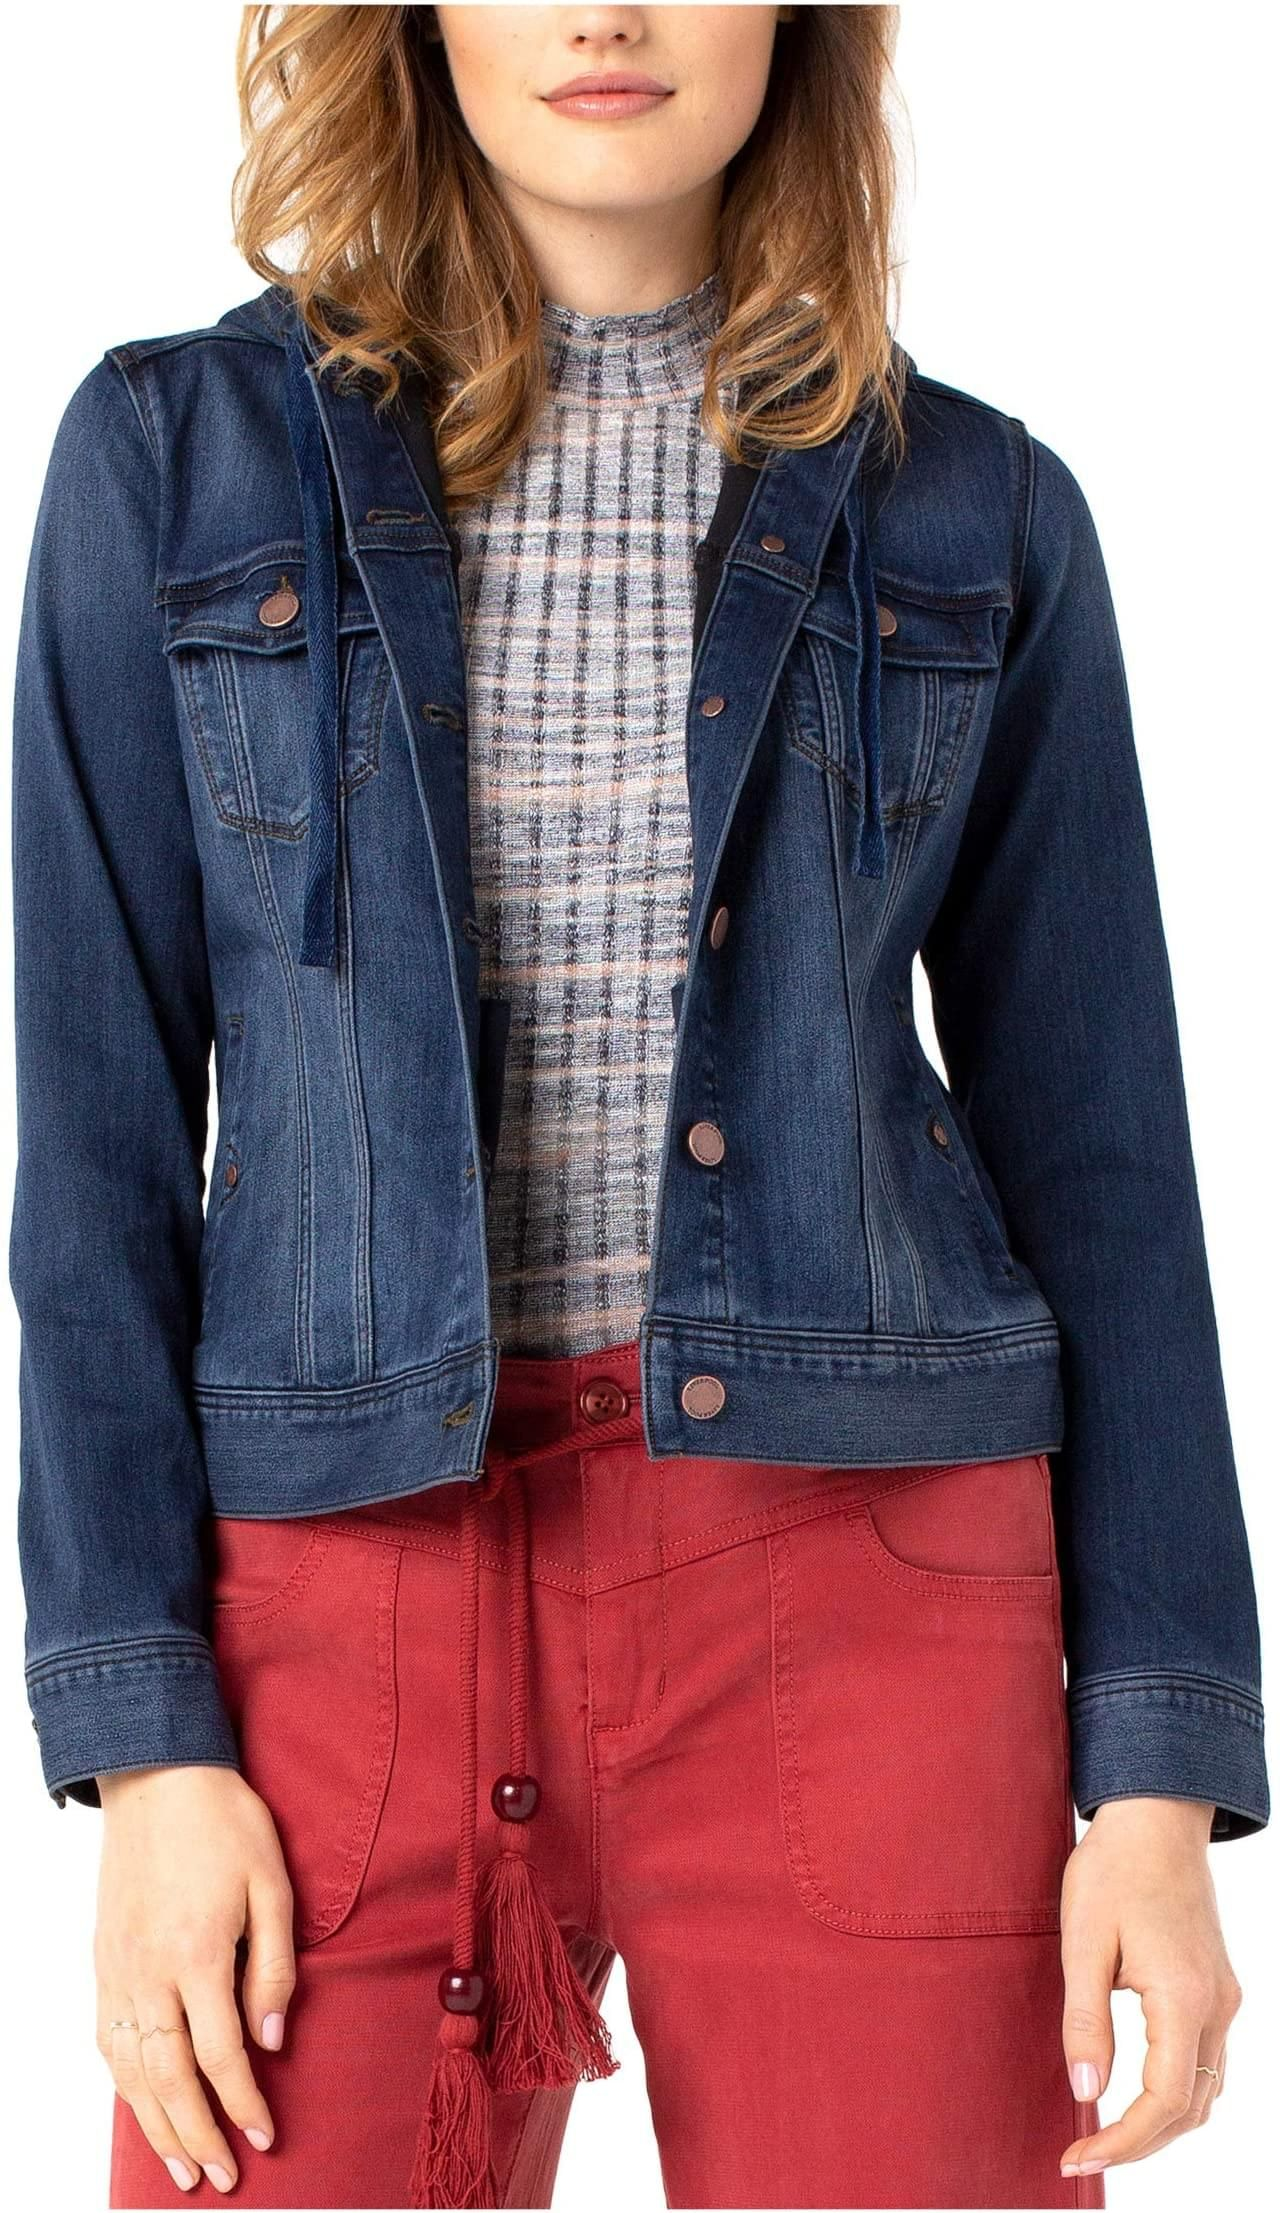 Self Hooded Jean Jacket By Liverpool 119 00 Style Sanders Red Denim Jacket Hooded Denim Jacket Denim Jacket [ 2213 x 1284 Pixel ]